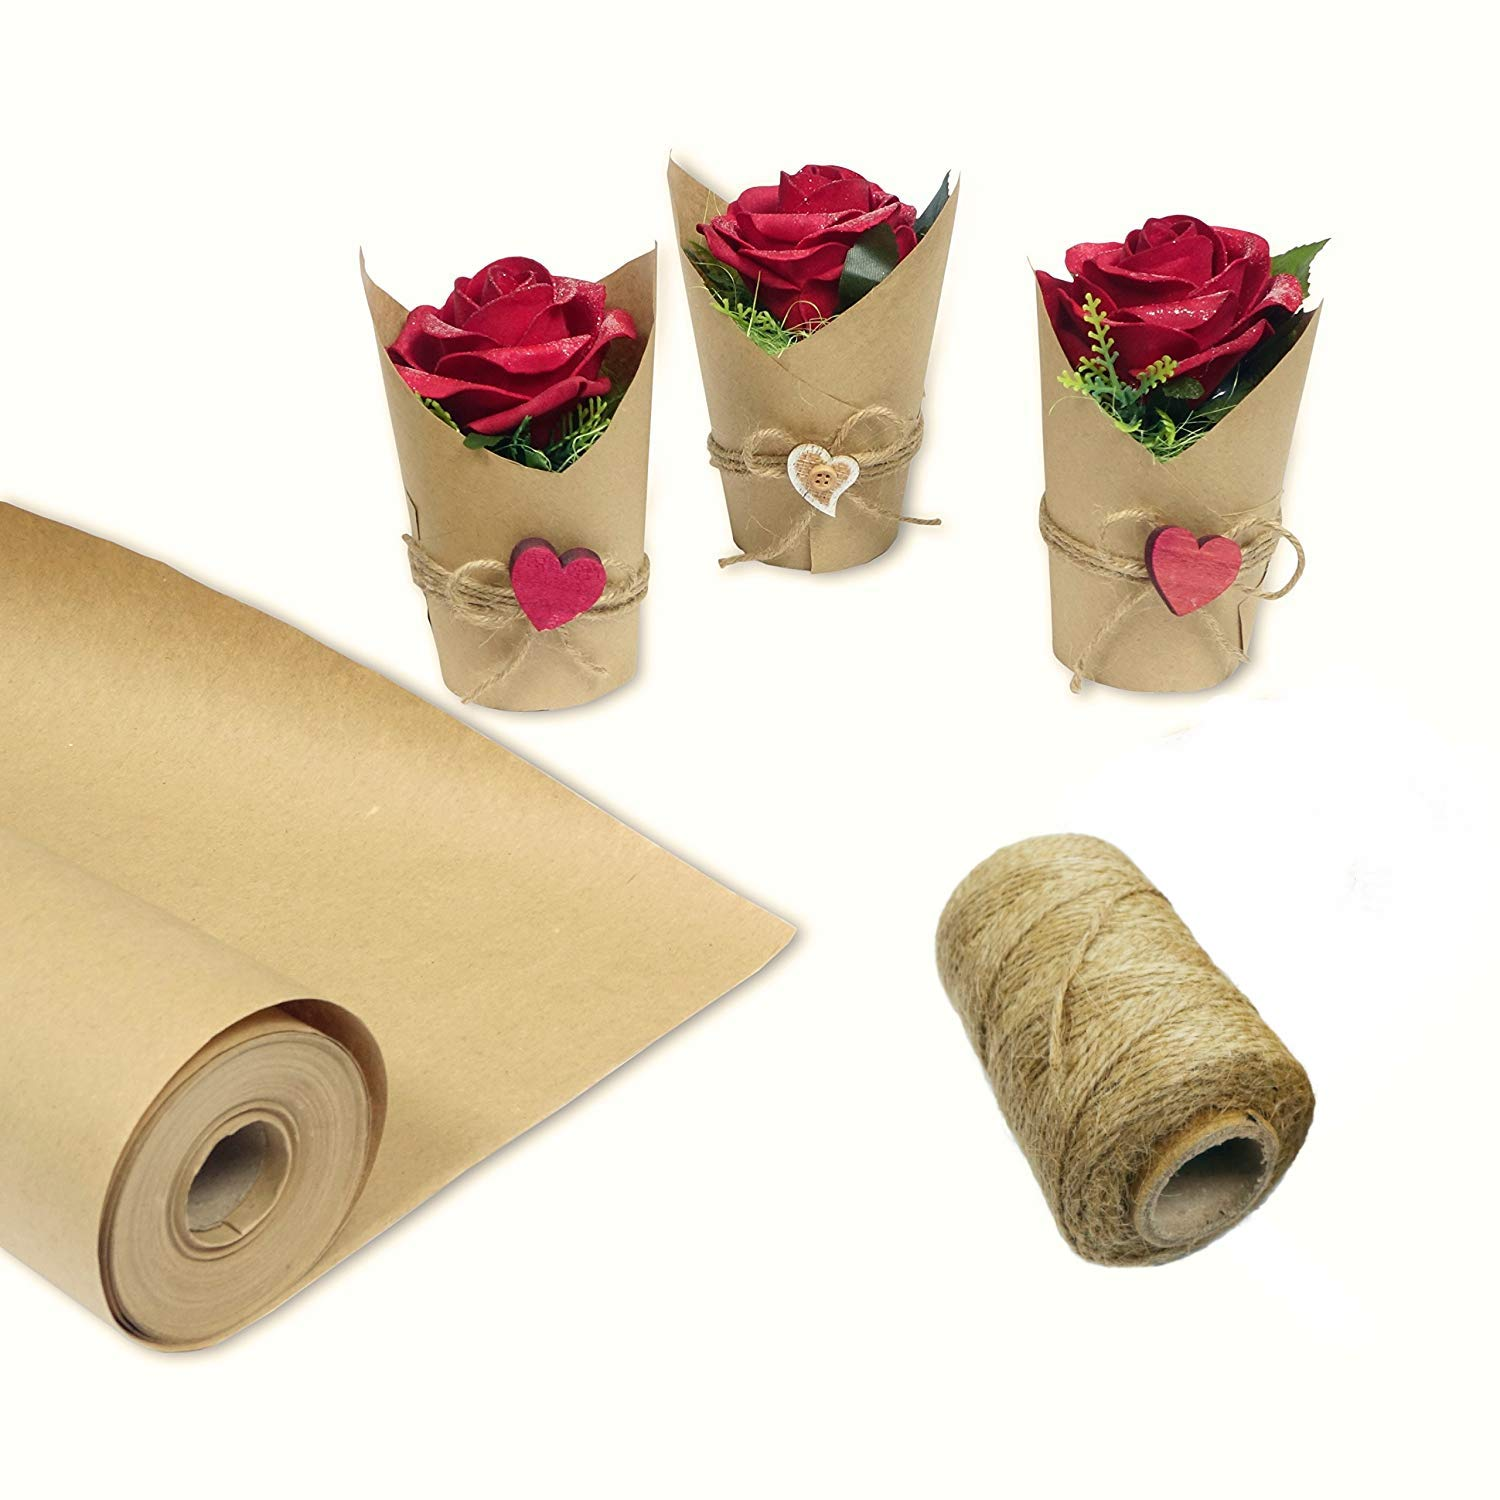 Shipping XL Thickness 50# Recycled Made in USA Table Runner Packing Dunnage Parcel Jumbo 30 x 1200 Postal Craft Brown Kraft Paper Roll for Gift Wrapping by Blami with Jute Twine 100 ft